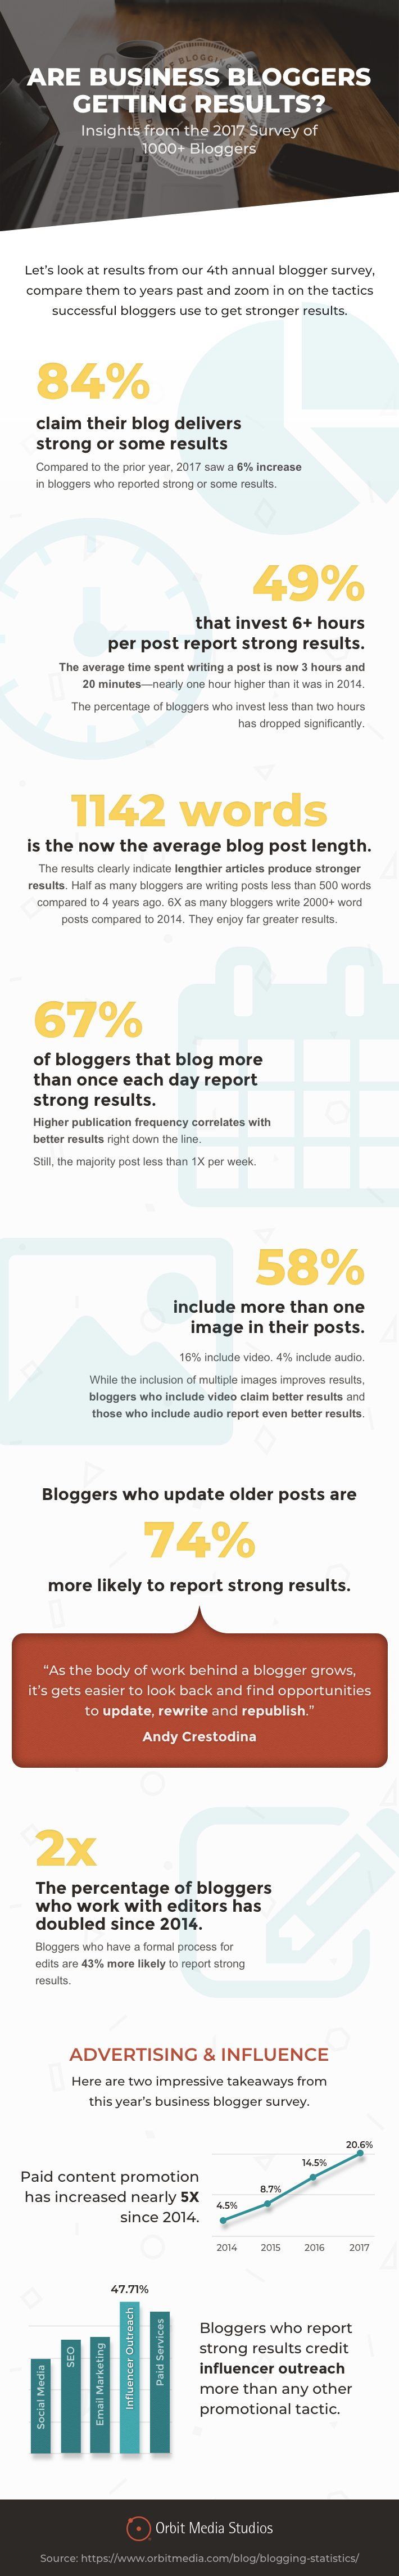 10+ Stats to Guide Your 2018 Blogging Strategy [Infographic] | Social Media Today